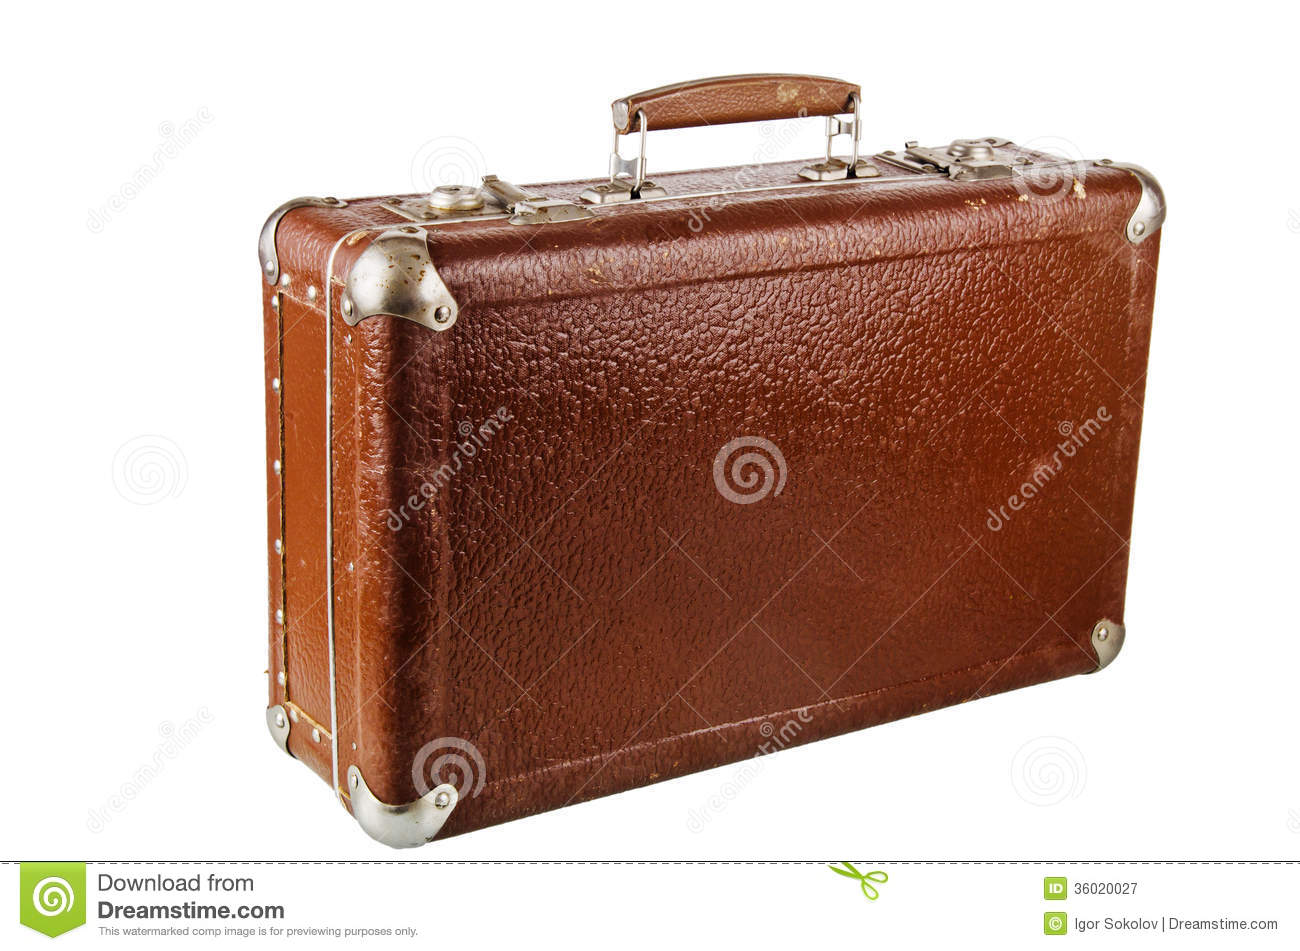 Old cardboard suitcase isolated royalty free stock photography image 3602 - Valise carton vintage ...